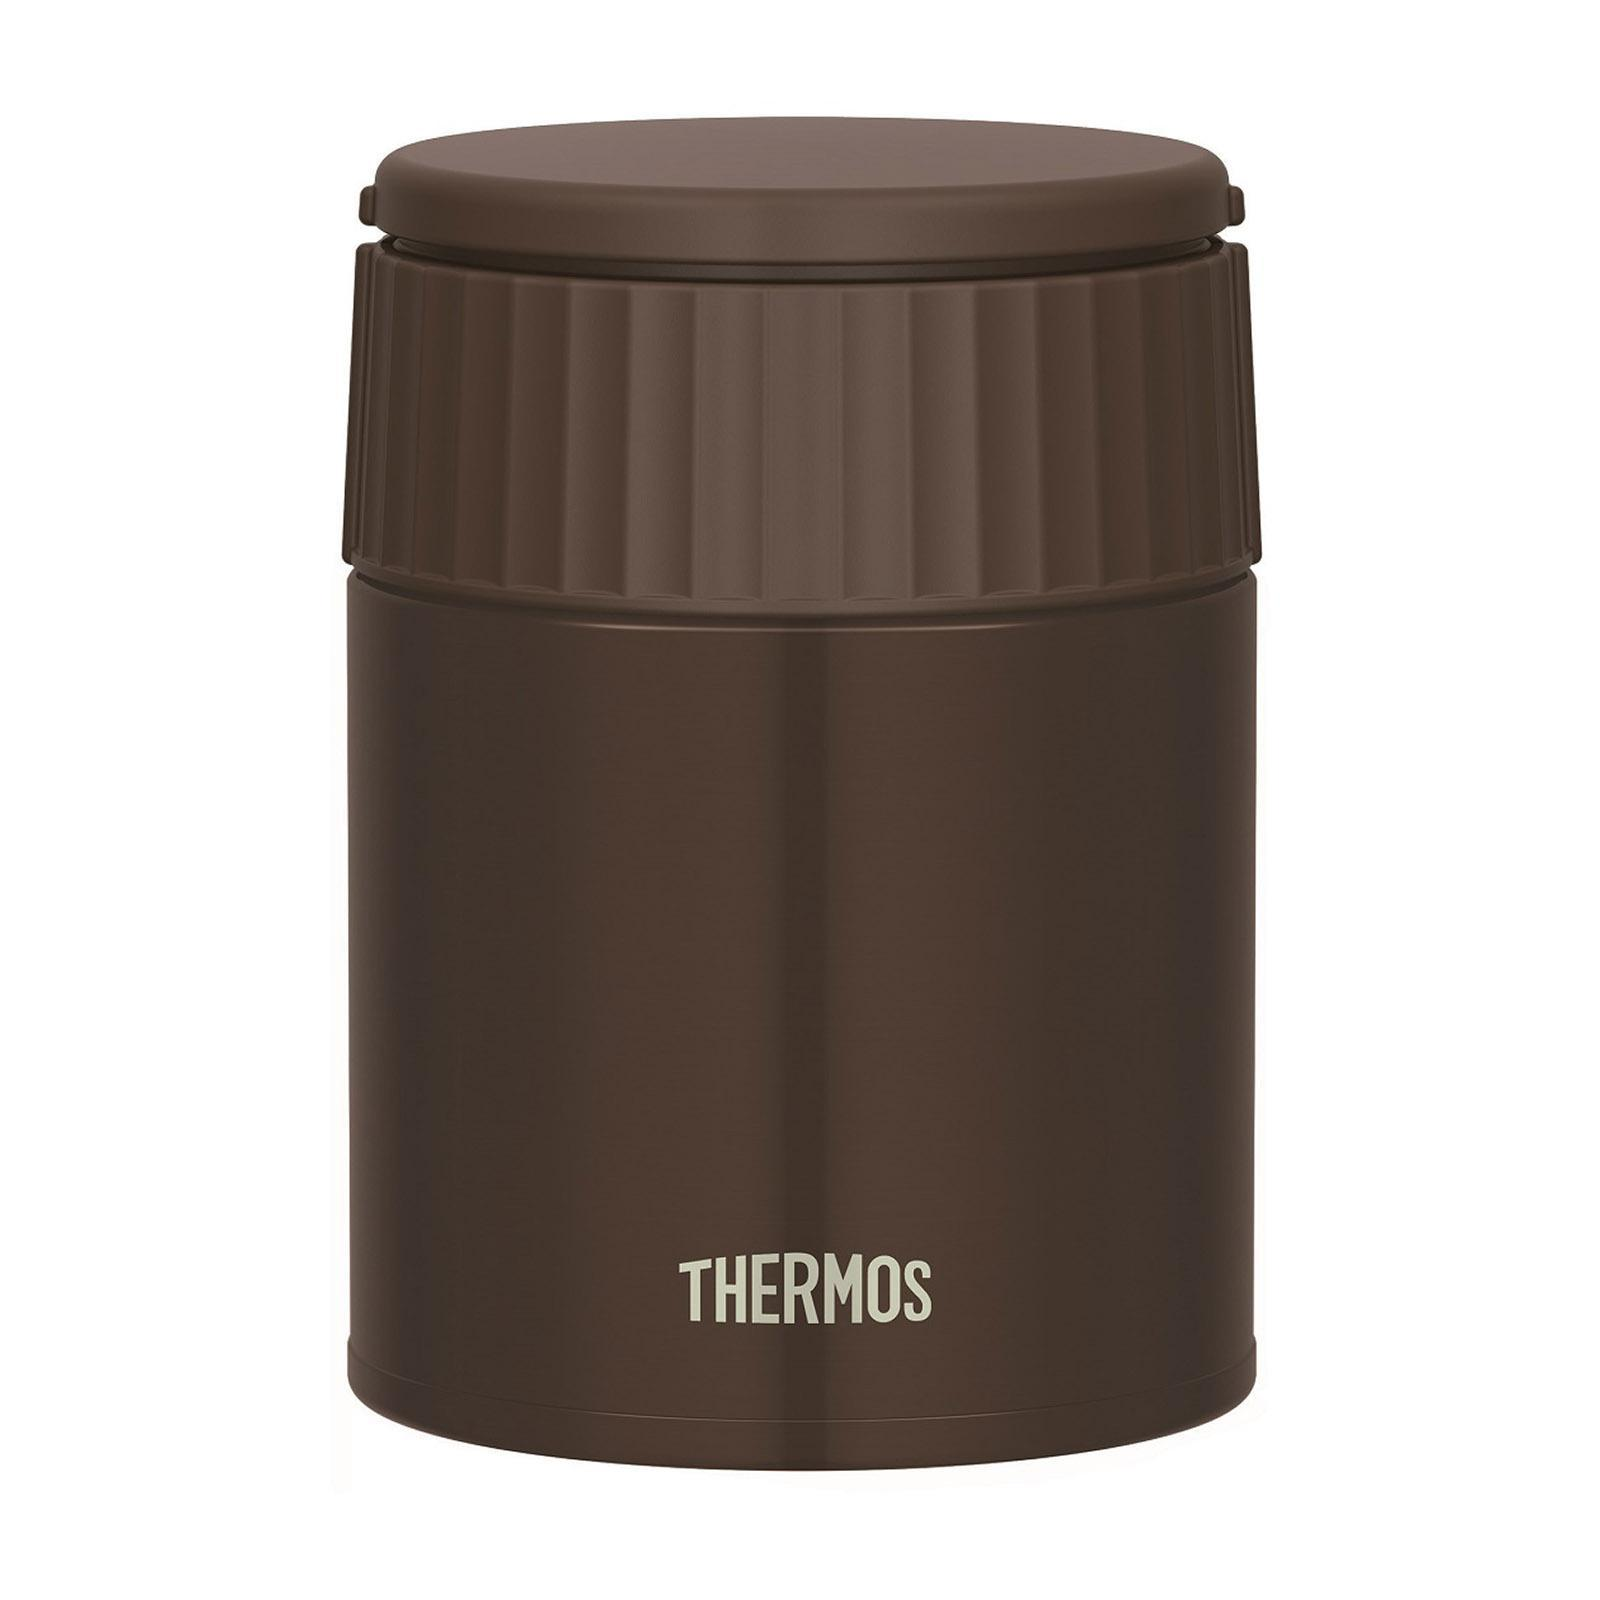 Thermos Jbq-400 Mc Food Jar - Stainless Steel Vacuum Insulated